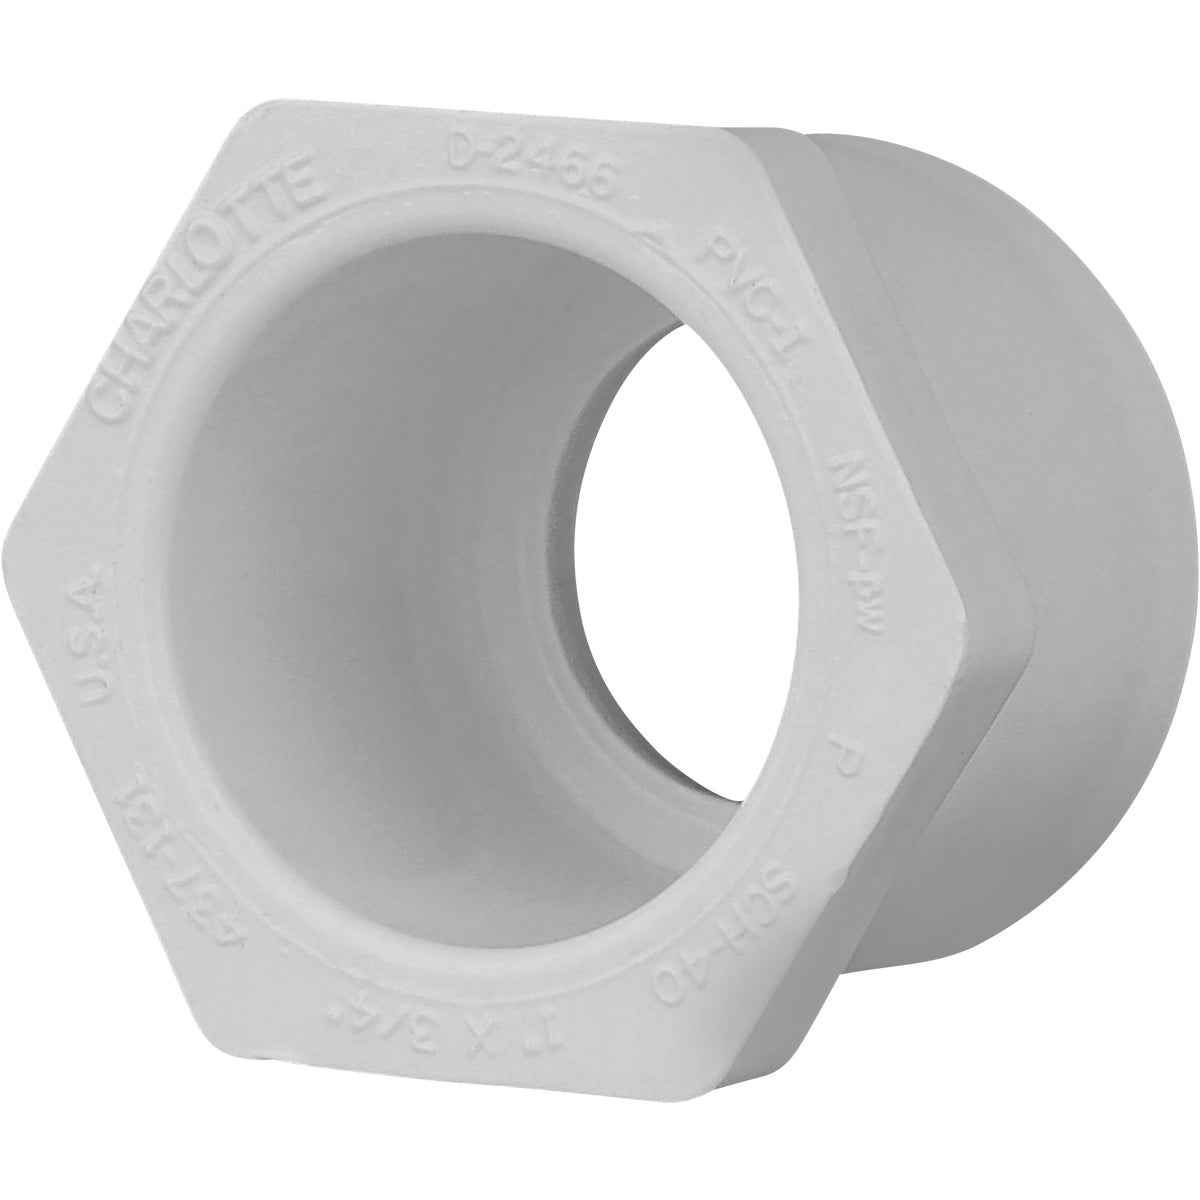 1X3/4 PVC SPXS BUSHING - 30217 by Genova Inc